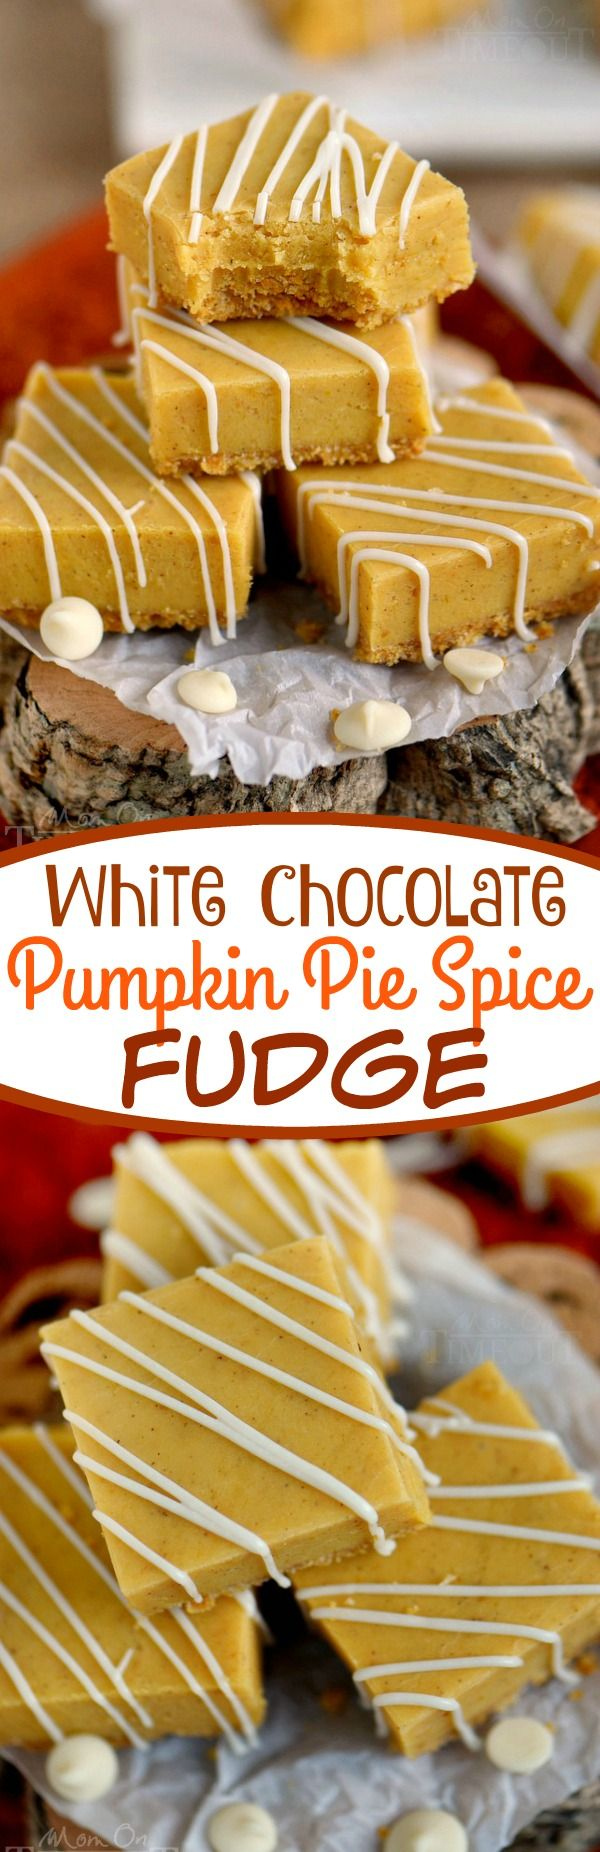 This delightful White Chocolate Pumpkin Pie Spice Fudge is made with real pumpkin, a graham cracker crust, and is topped with a white chocolate drizzle - perfection! Be sure to make a batch for friends and family this year!